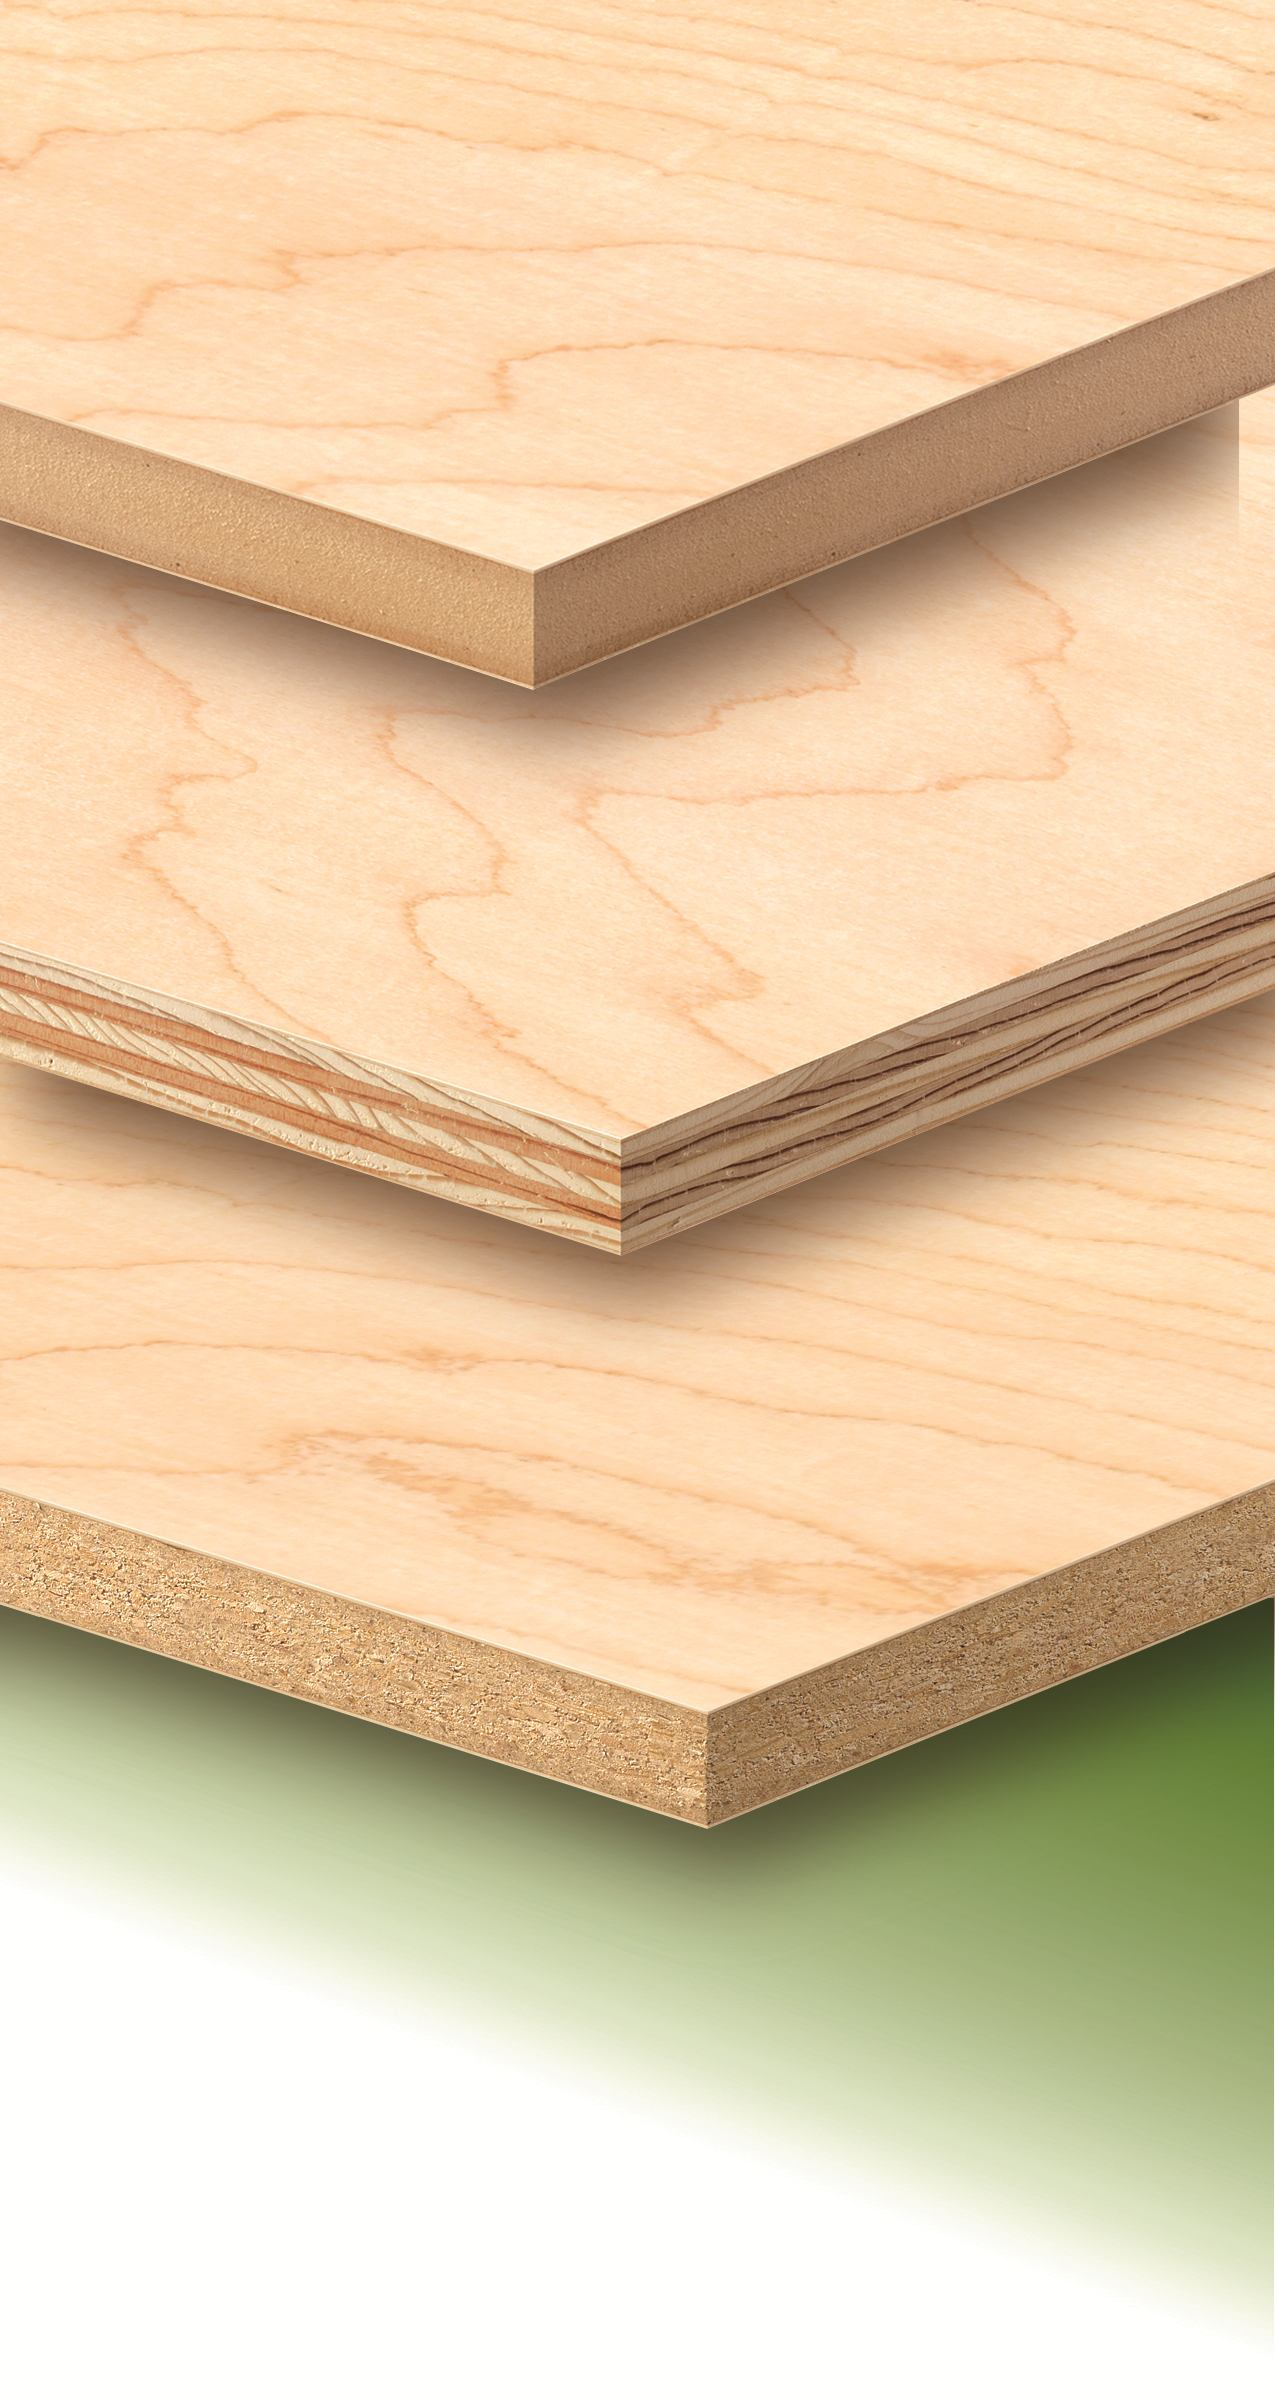 Timber Products Co Offers Urea Formaldehyde Free Resins